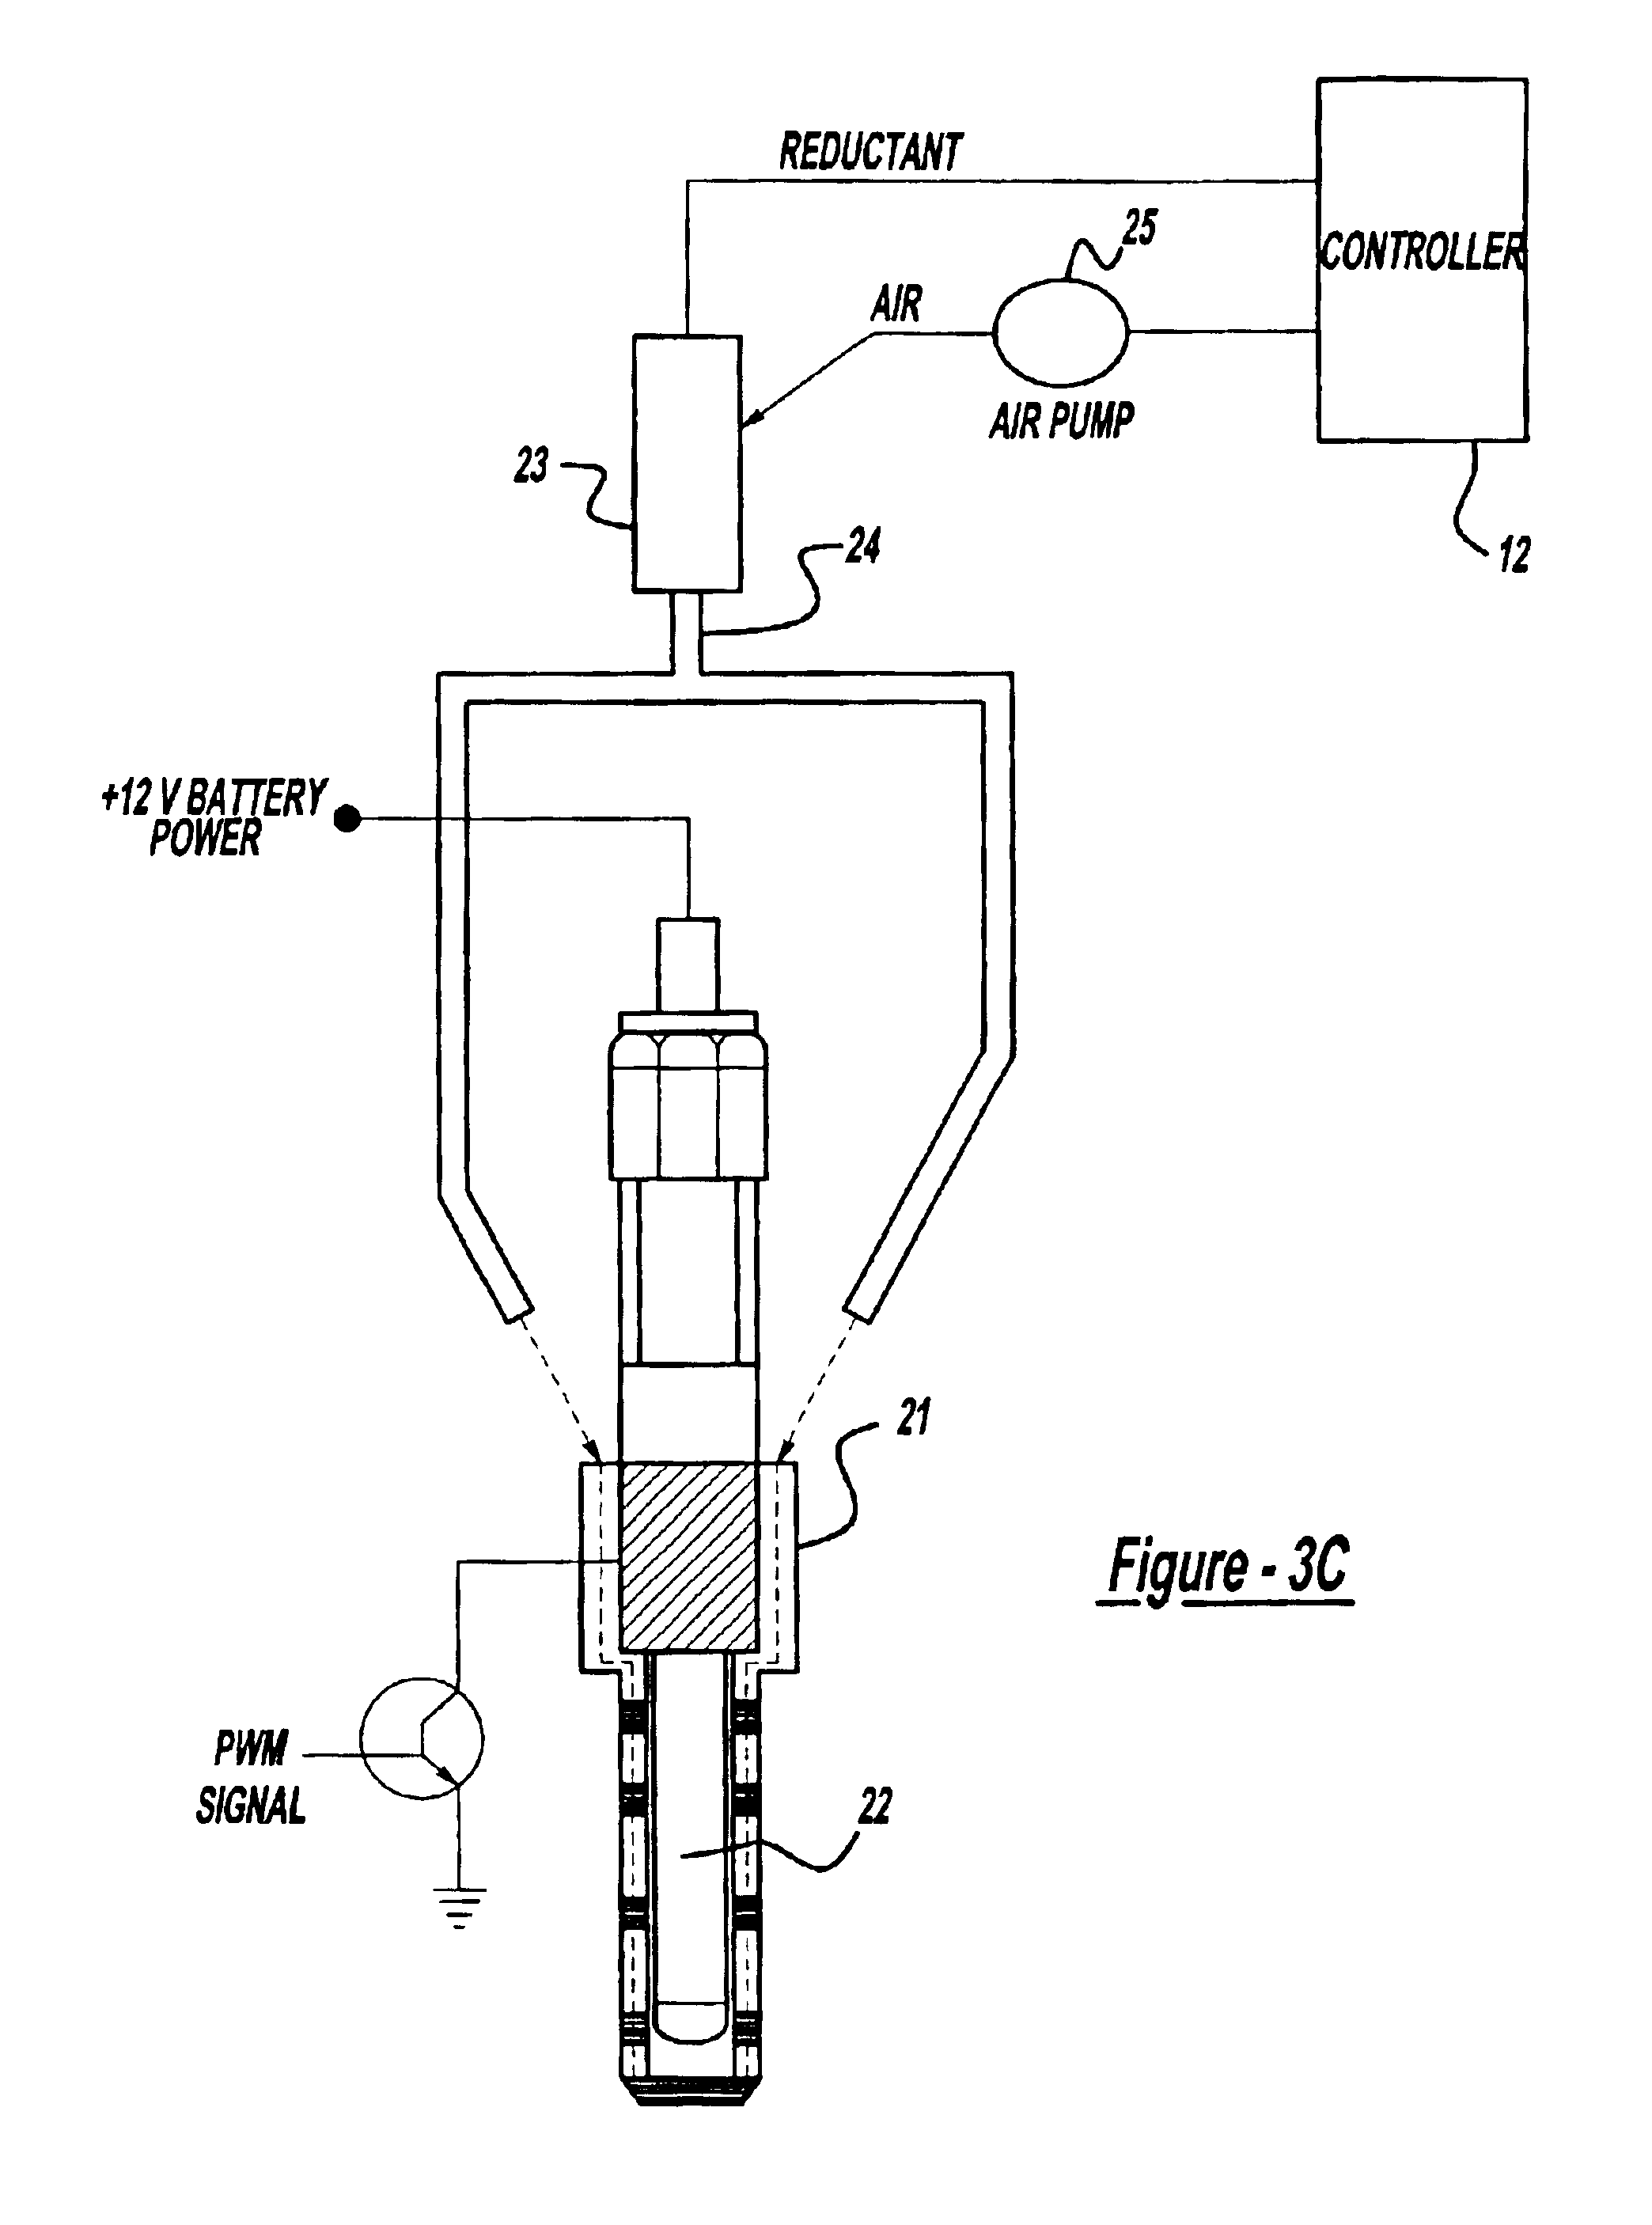 Patent US6928806 - Exhaust gas aftertreatment systems - Google Patents